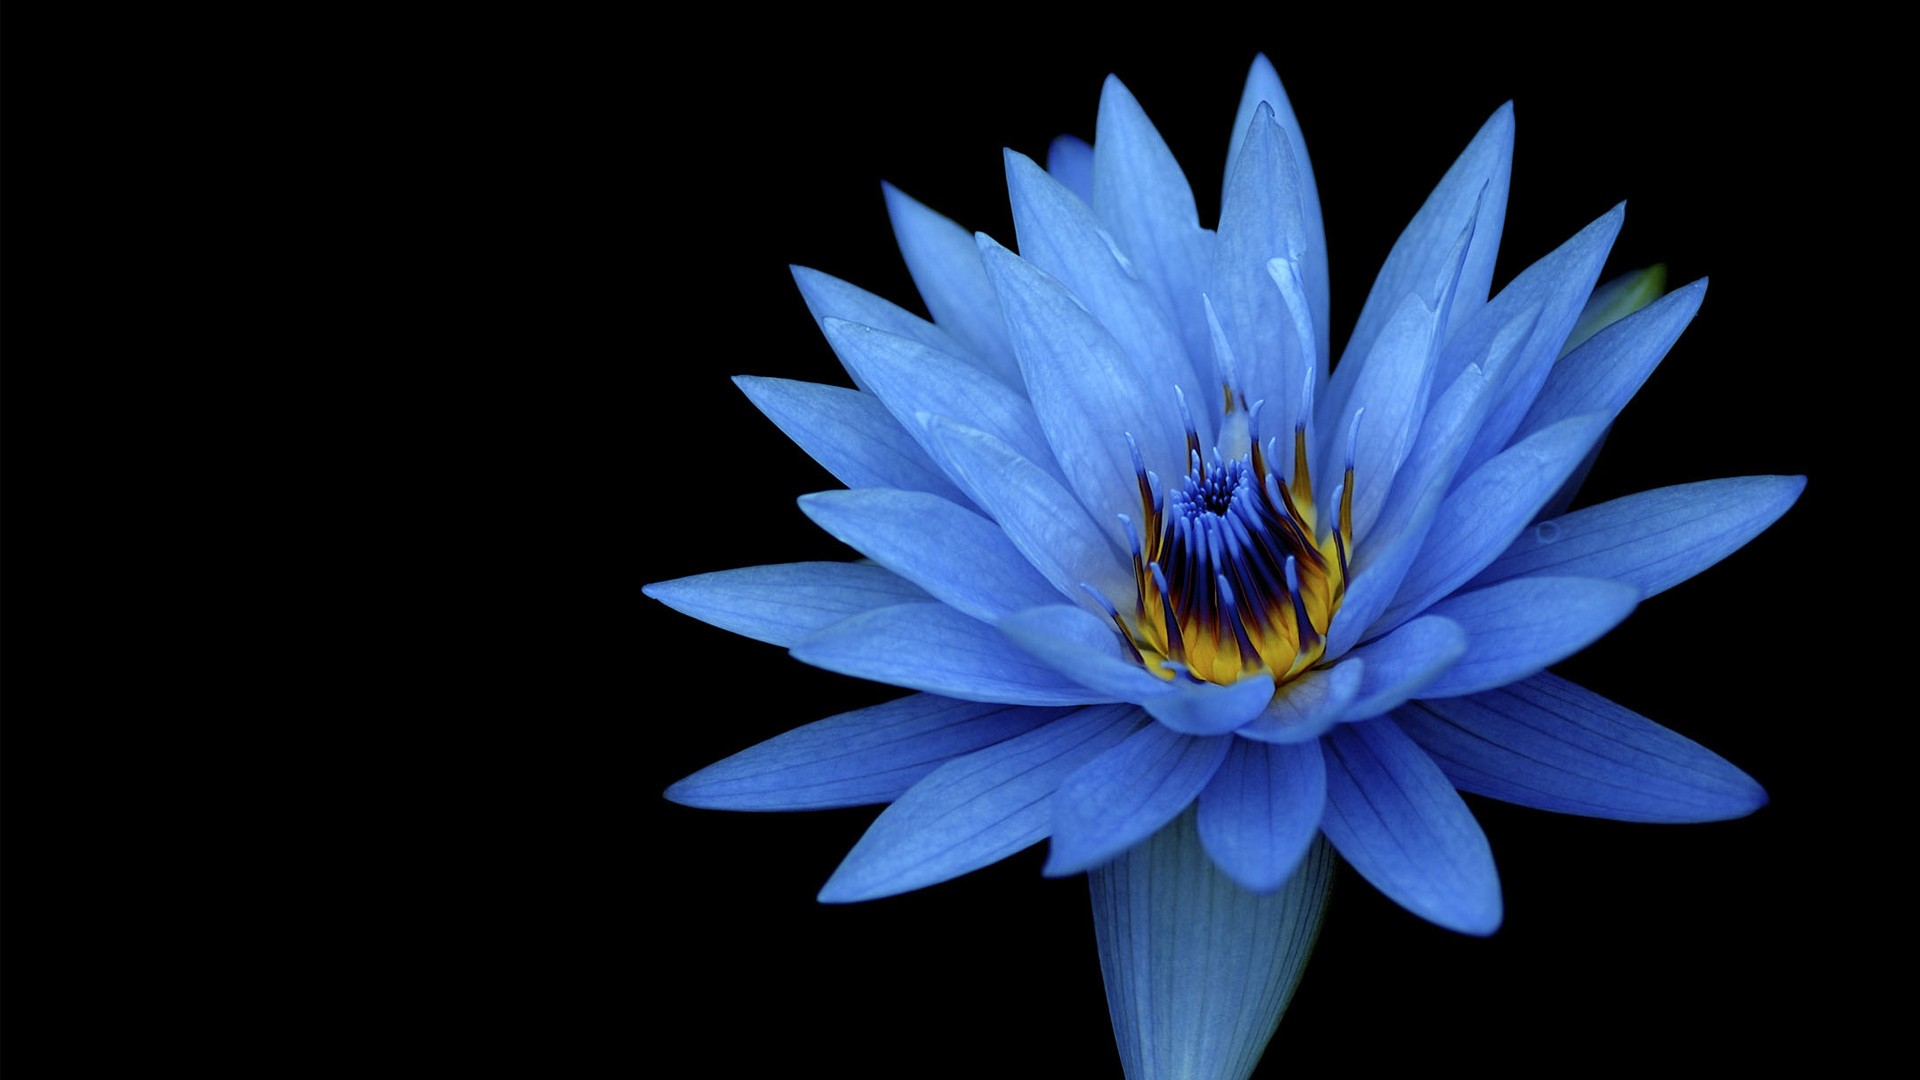 We've gathered more than 5 million images uploaded by our users and sorted them by the most popular ones. Sony Xperia Z Stock Blue Flower Wallpapers   HD Wallpapers